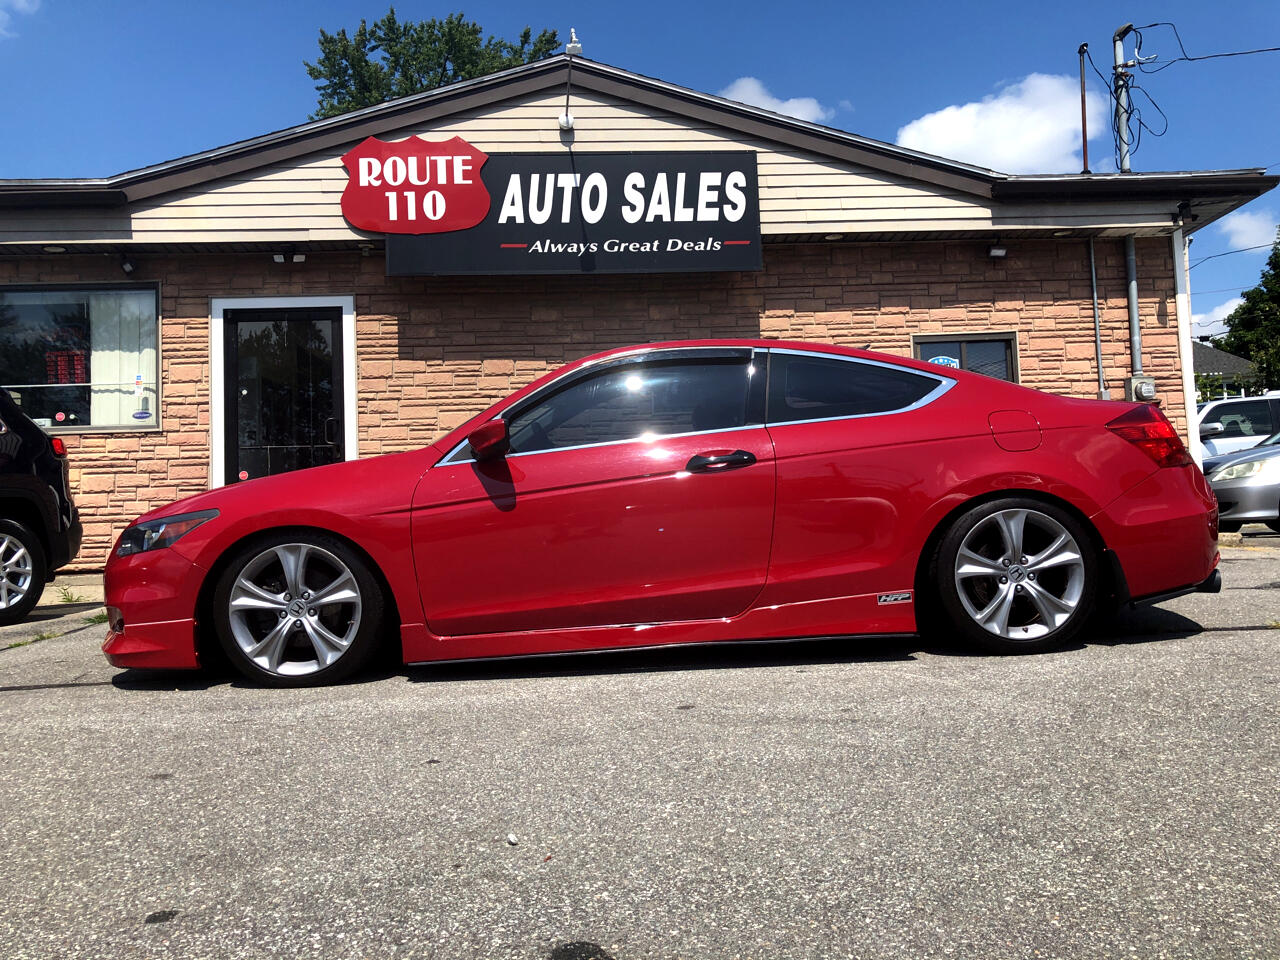 2012 Honda Accord EX-L V6 Coupe 6-Speed with Navigation